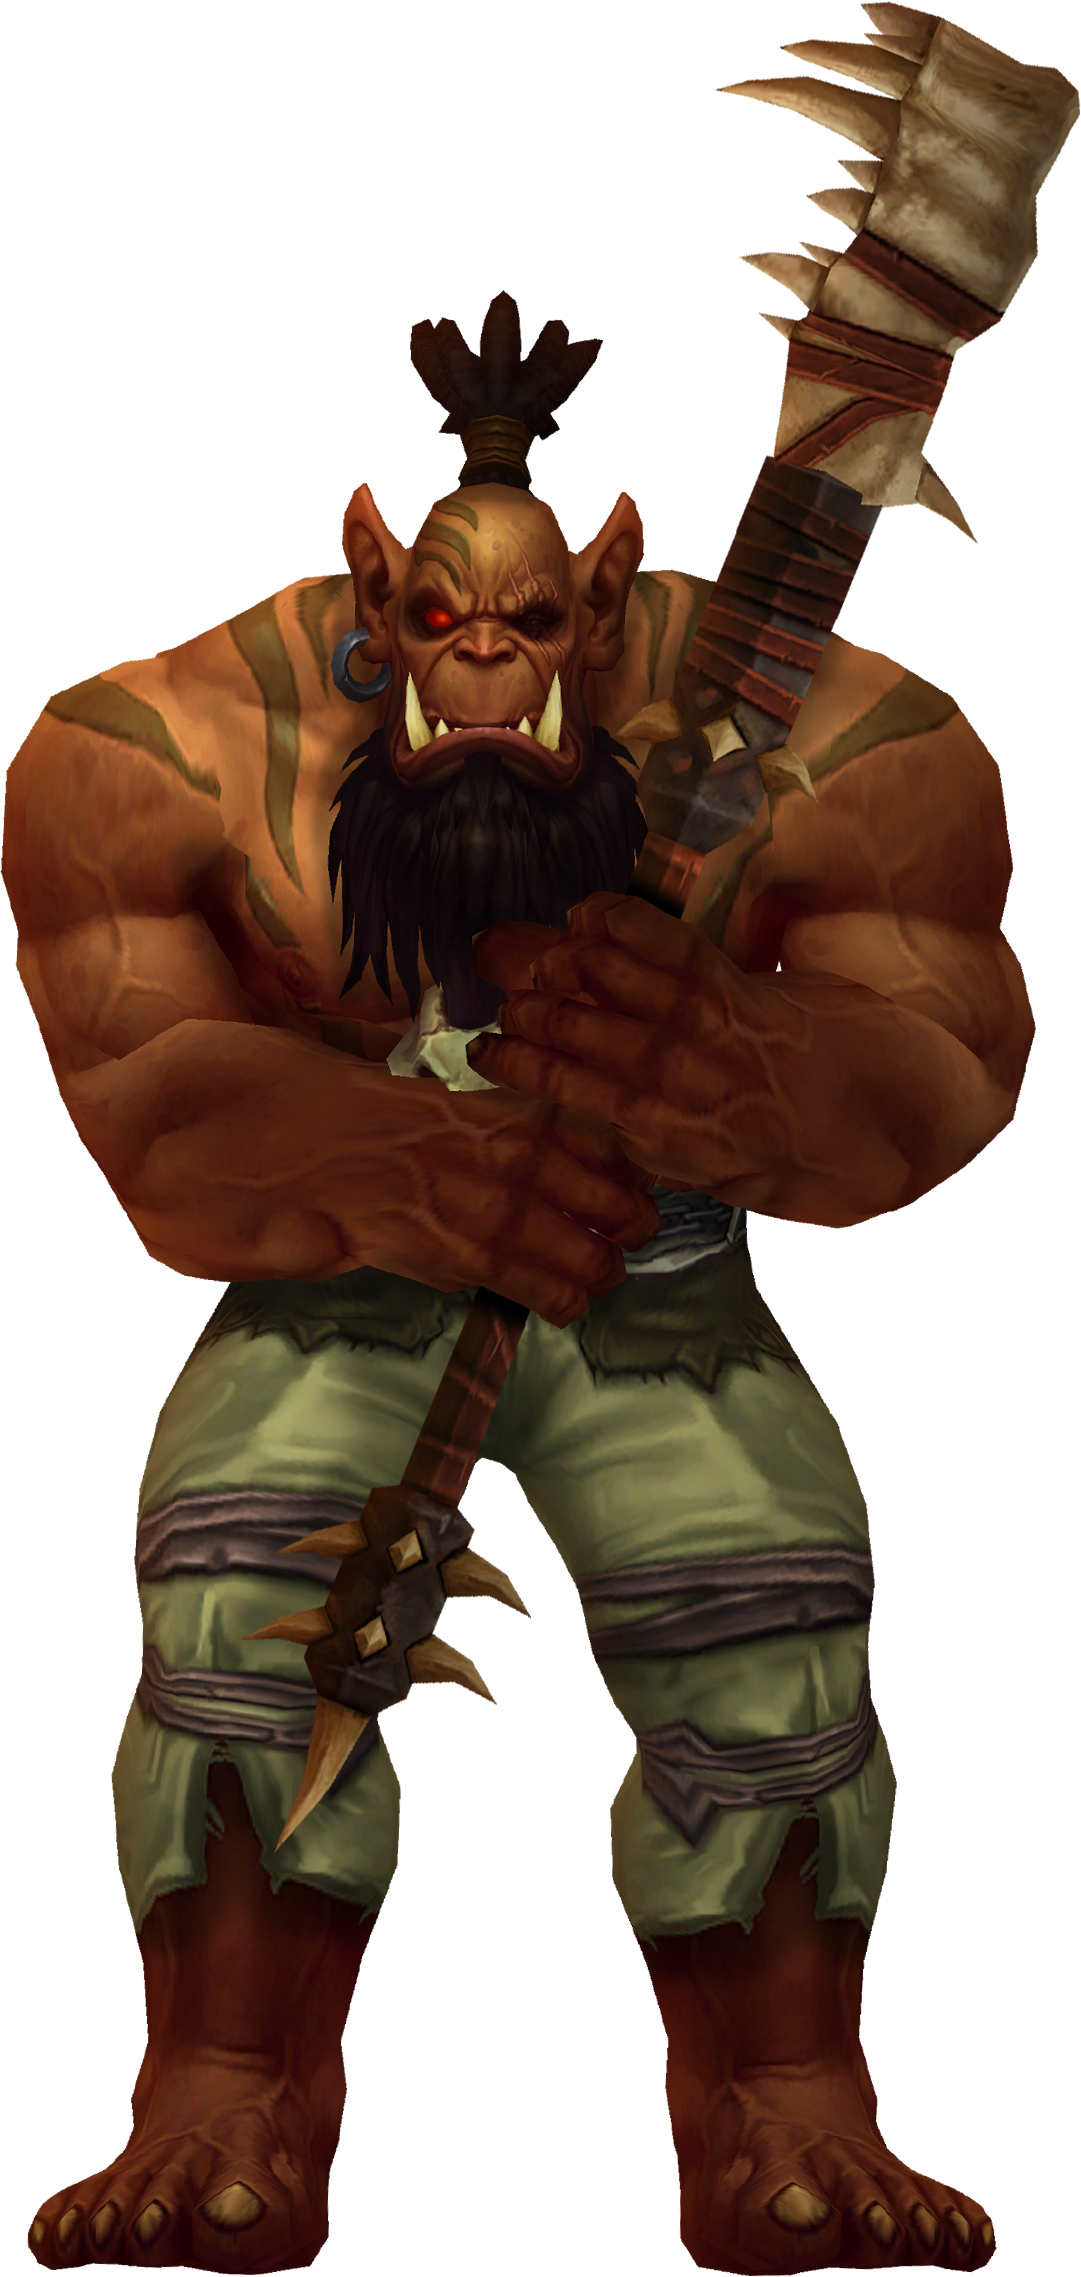 uploads orc orc PNG19 64